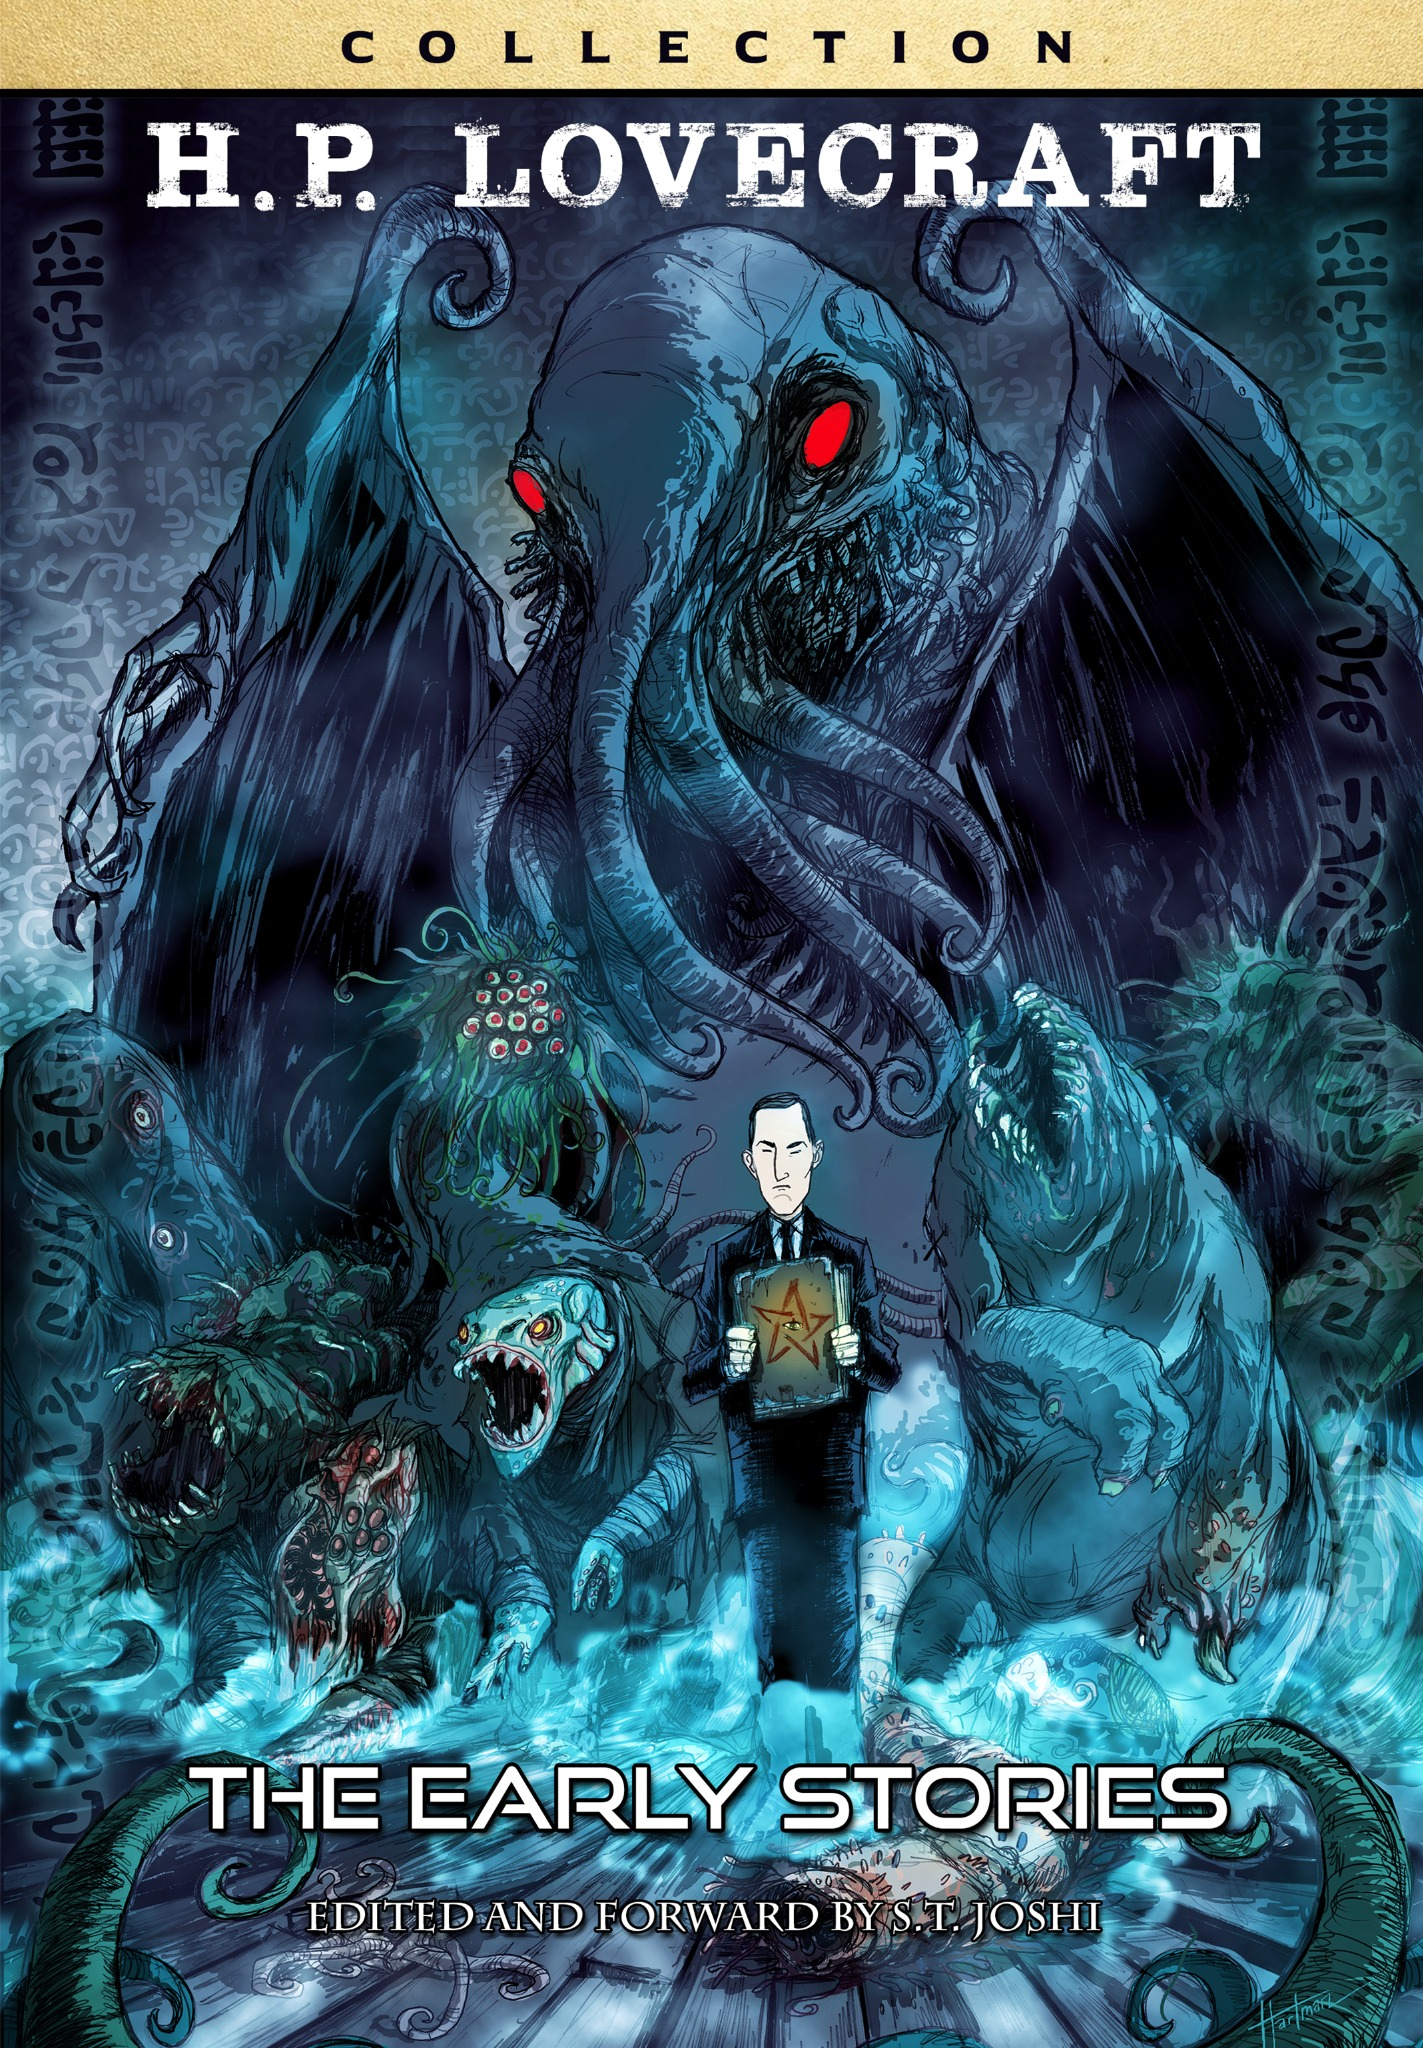 H.P. Lovecraft: The Early Stories